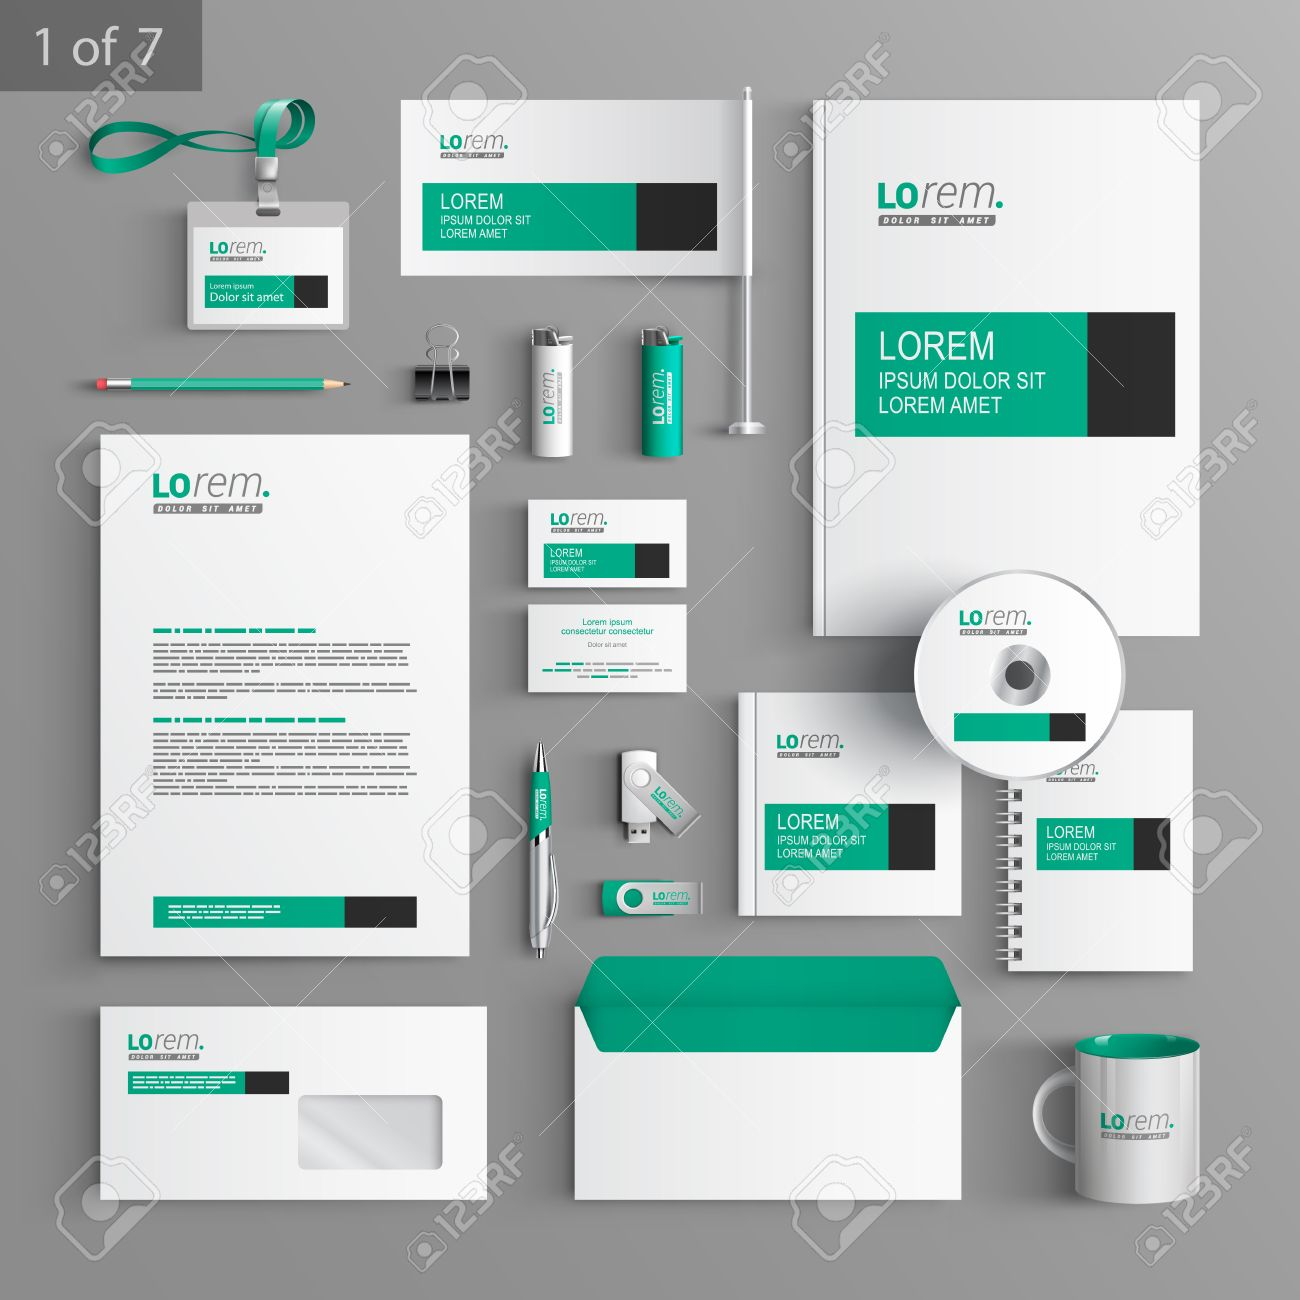 white classic corporate identity template design with green and